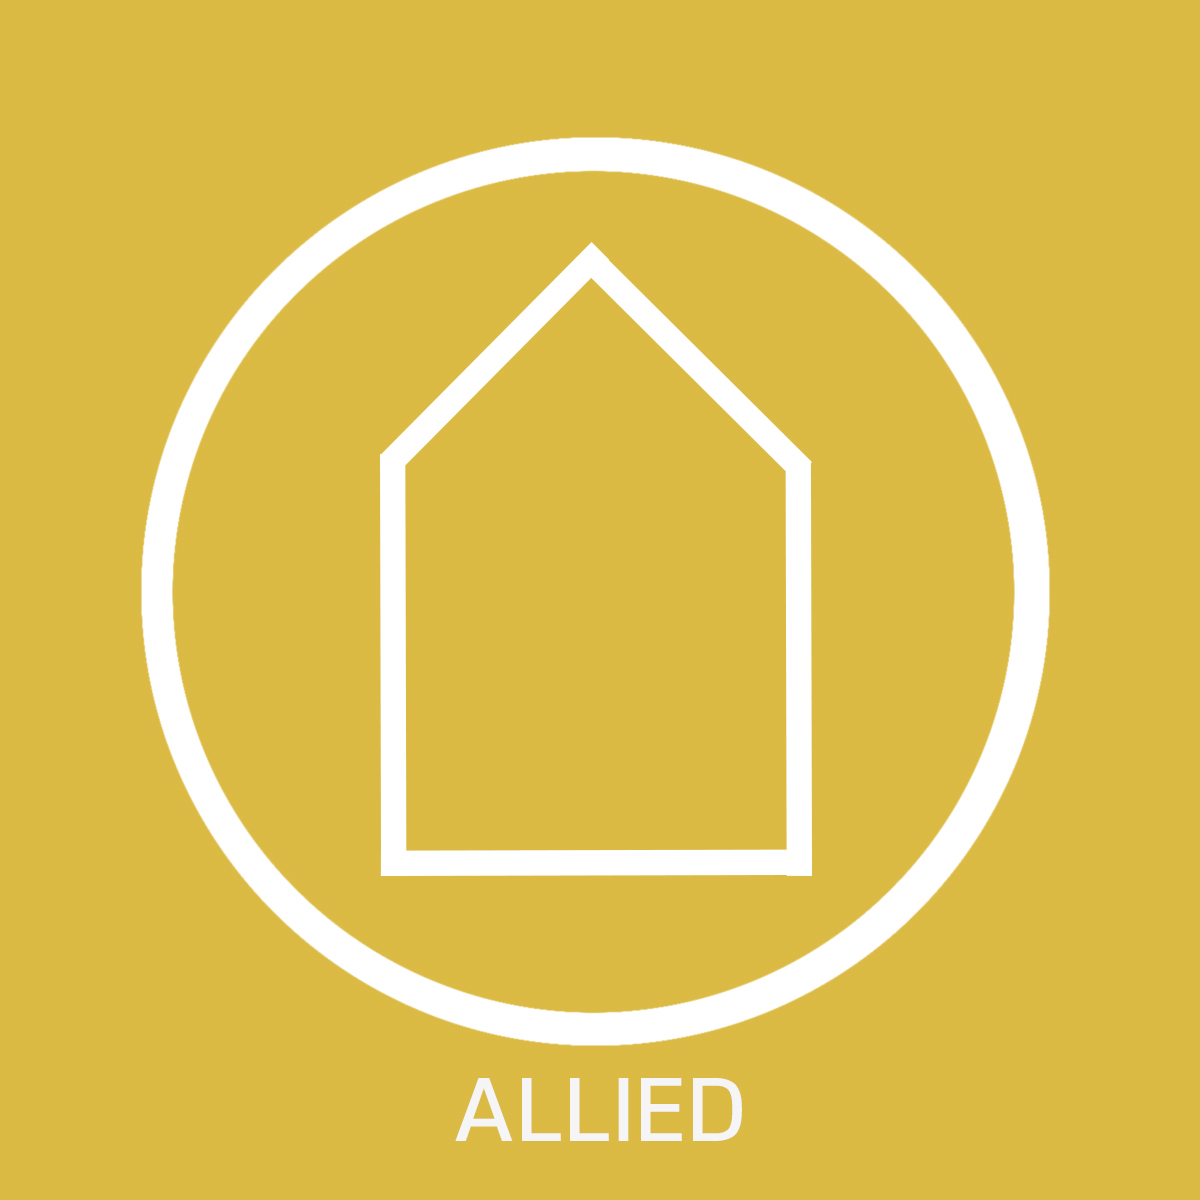 White Guildhouse logo with a yellow background, with the text 'allied' below